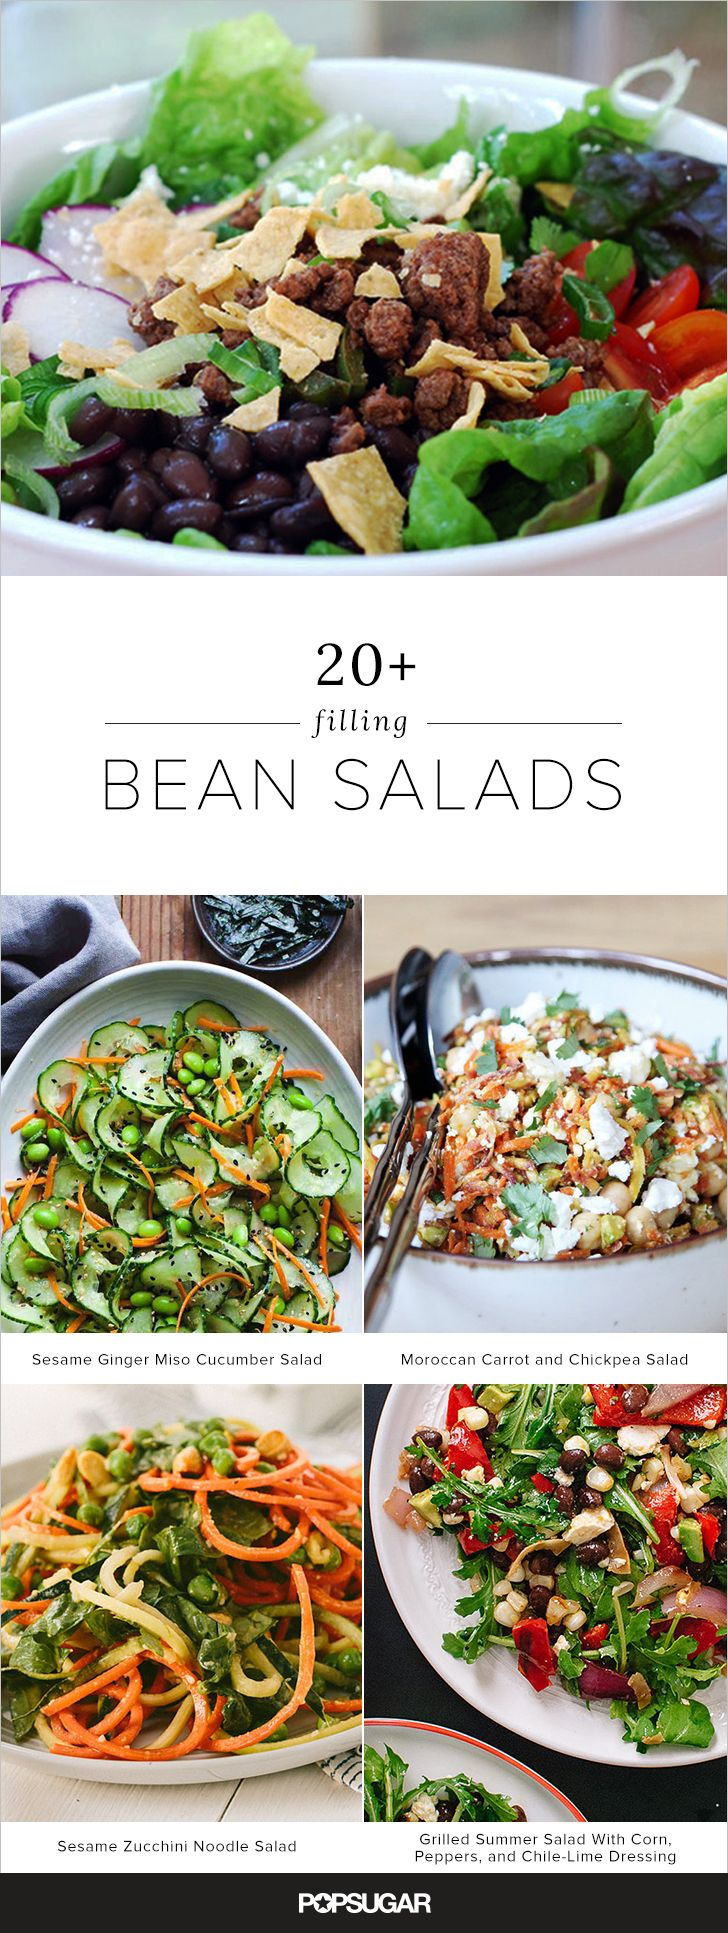 Beans and legumes like chickpeas, edamame, and lentils are one of our favorite salad ingredients; not only are they tasty, but they also work wonders when it comes to keeping us full until the next meal. Plus, many bean-based salads are good as leftovers (hello, killer brown-bag lunch). Here are more than 20 excellent options.